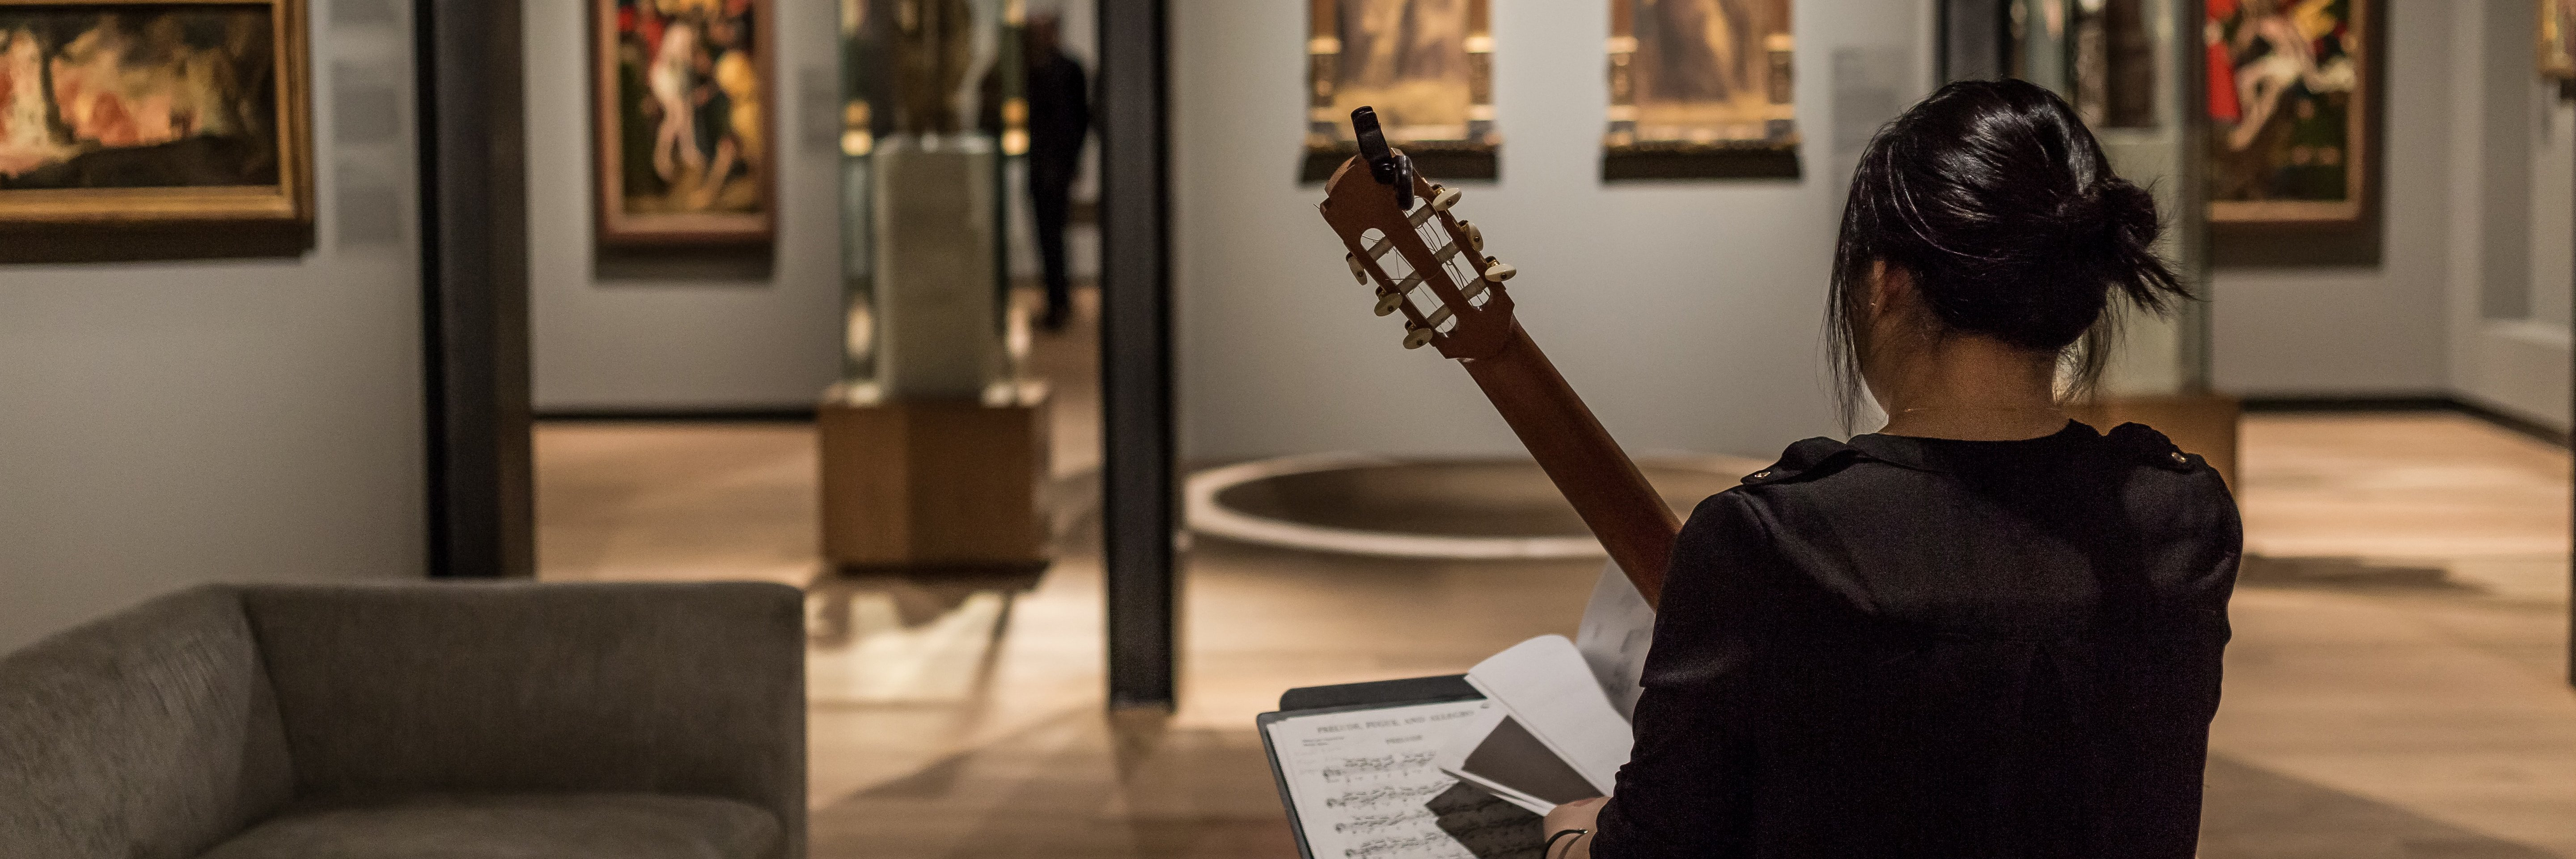 Guitarist in an art museum in Montreal, Canada